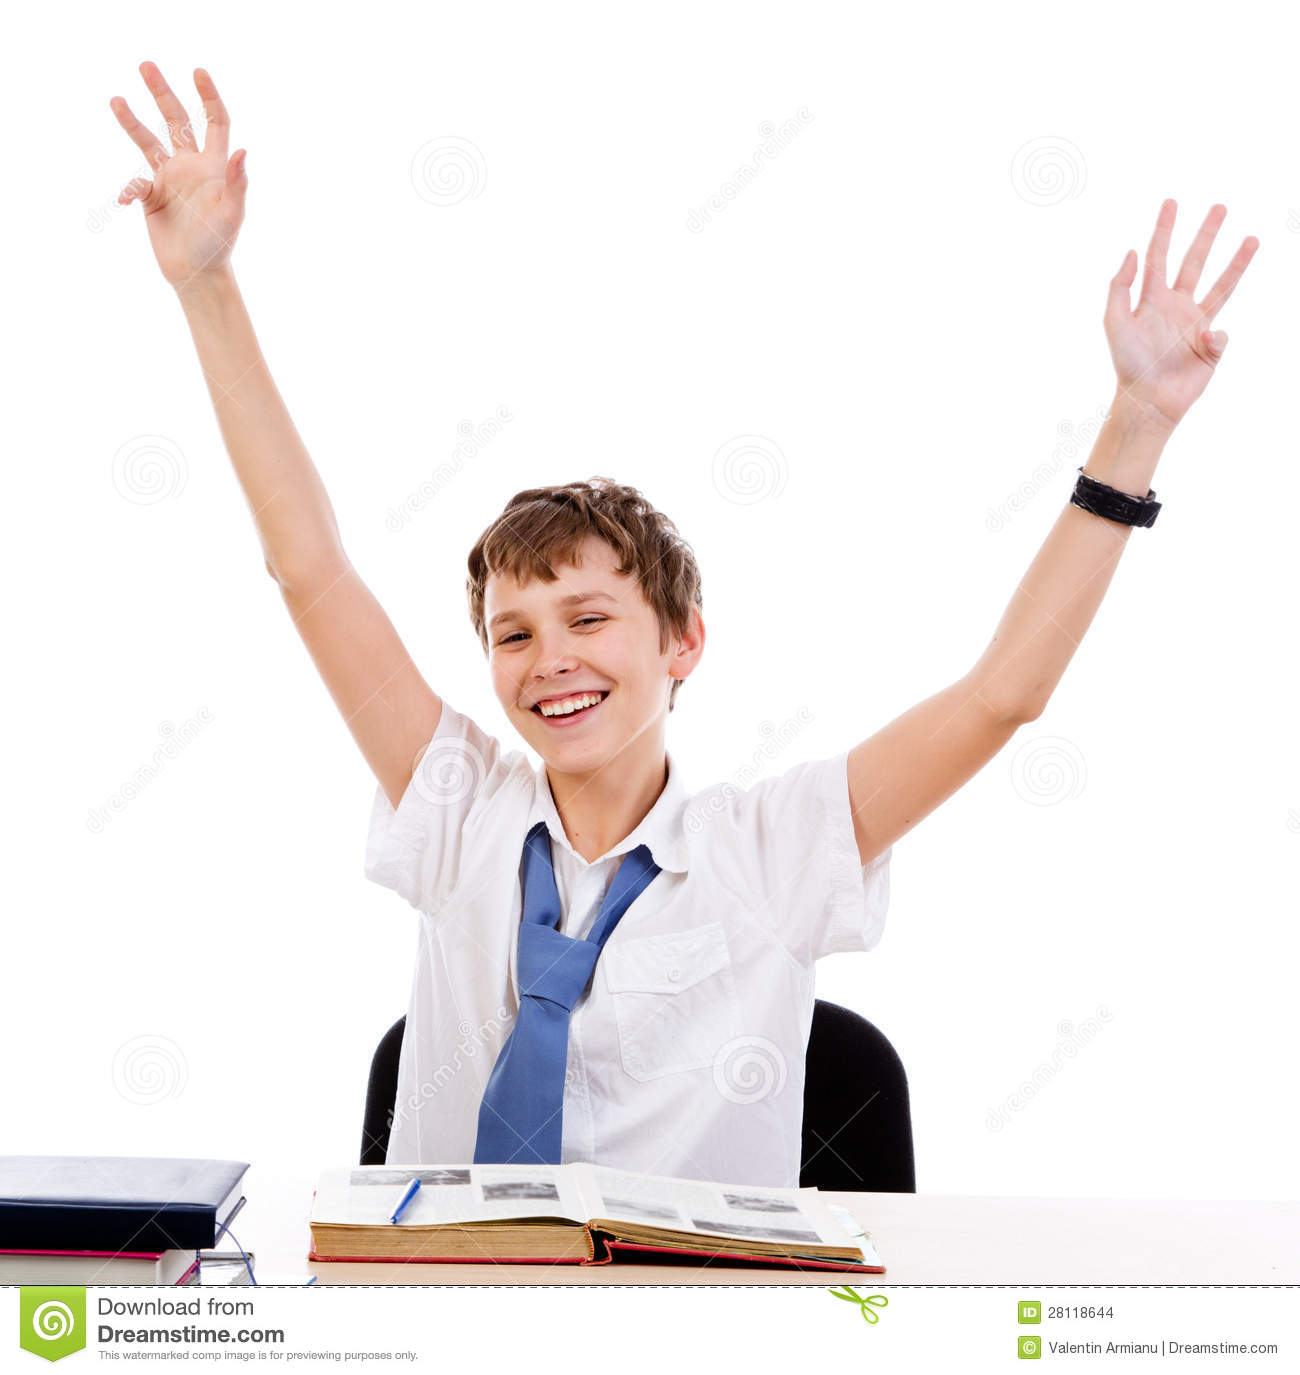 Student male with hands raised and big smile, sitting behind the desk.